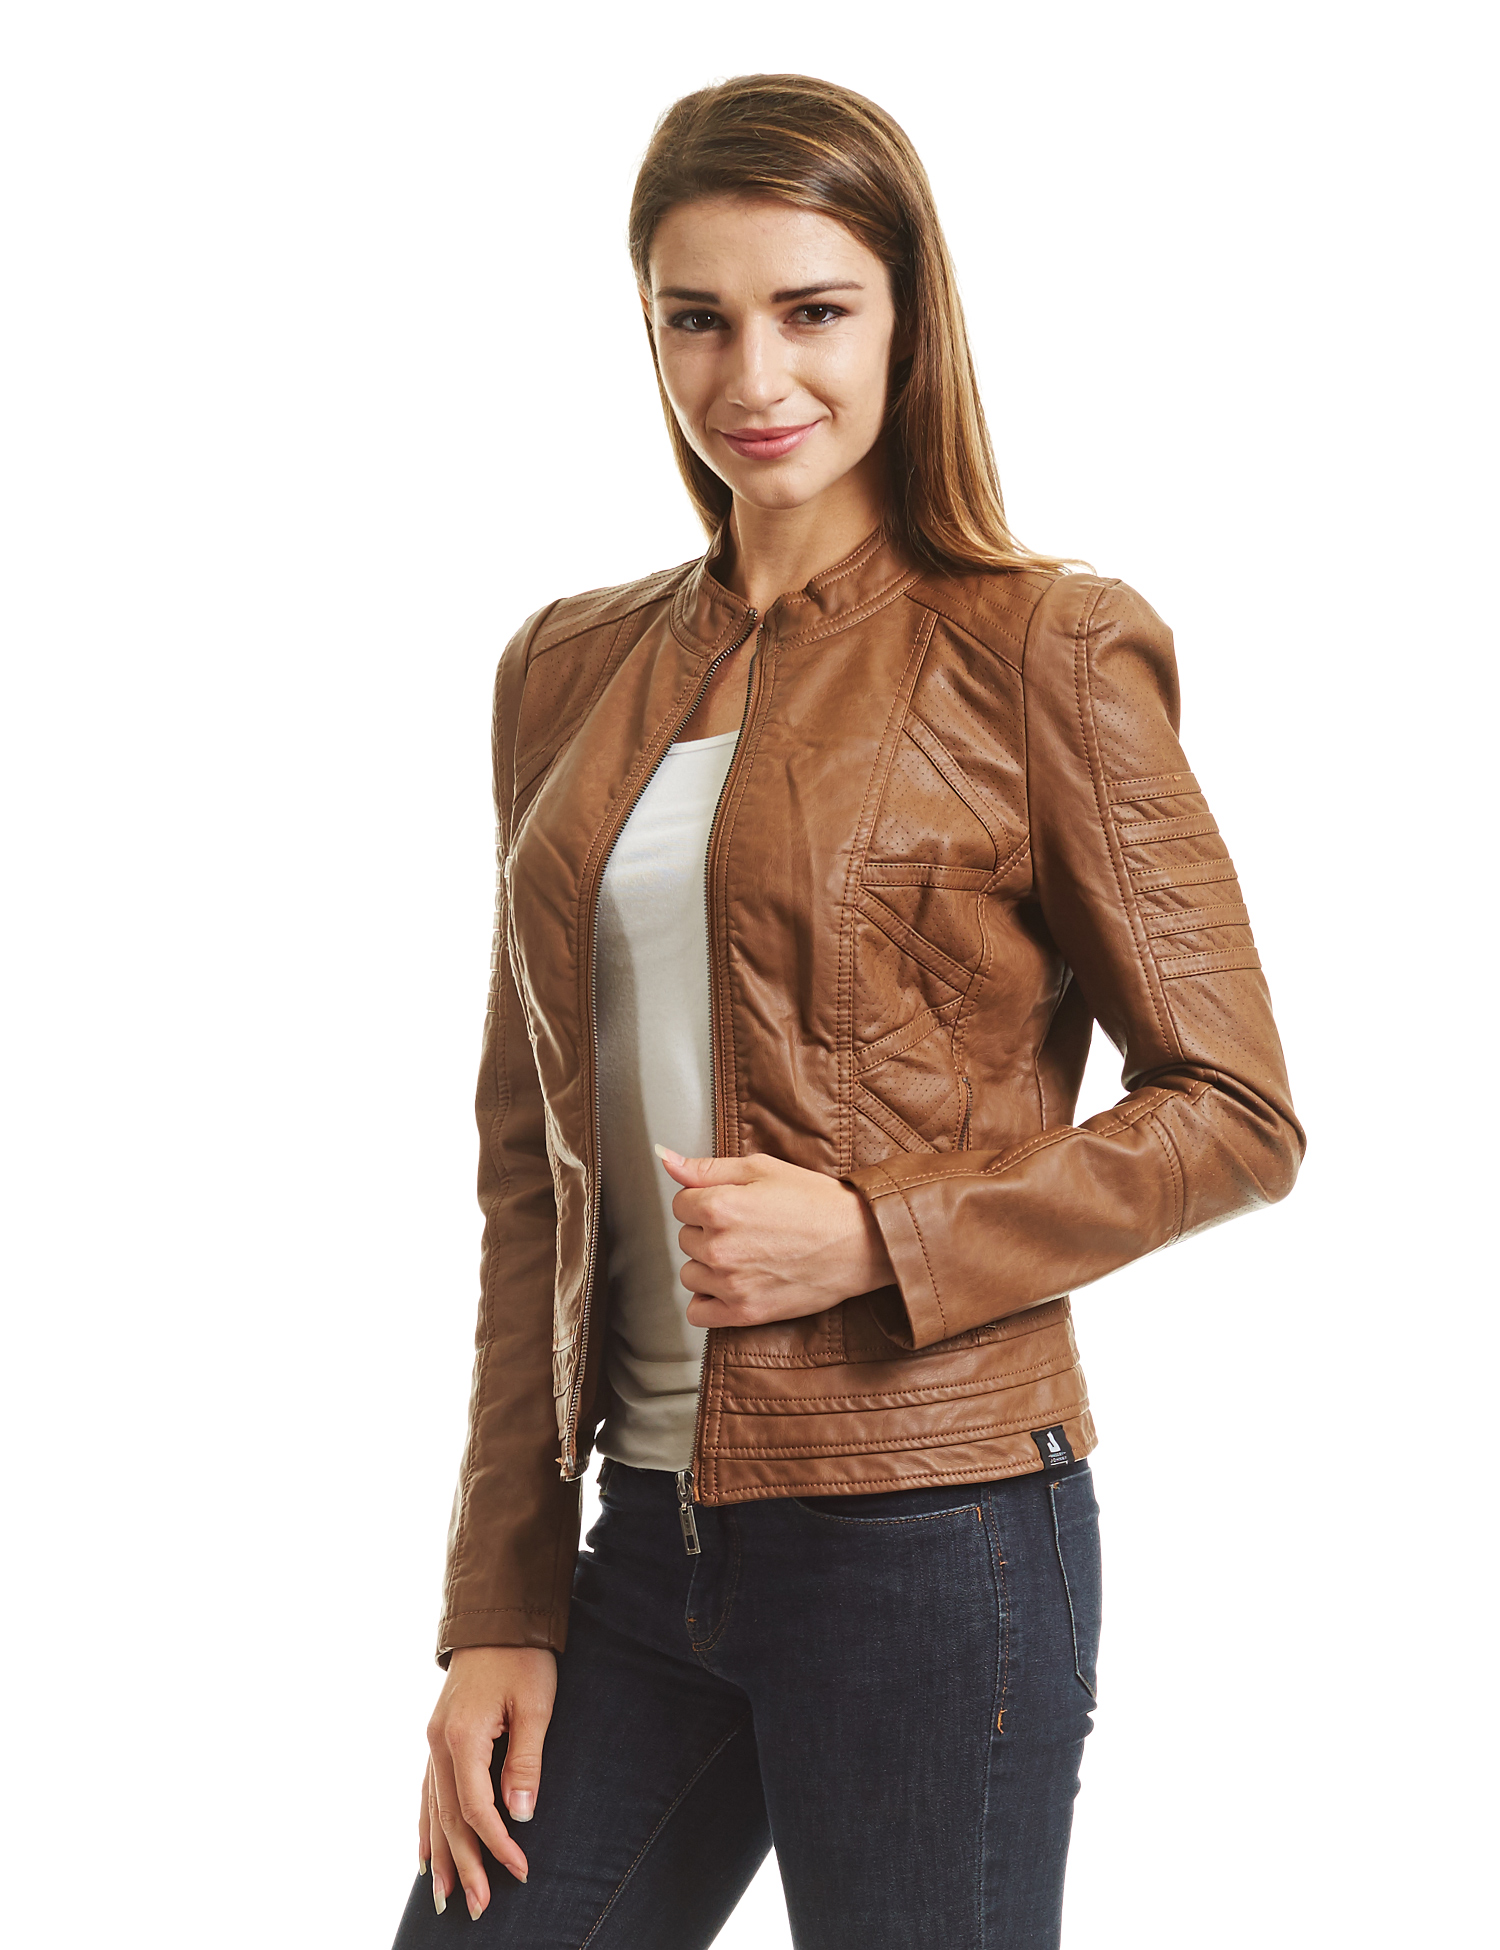 b483fb8775c Made by Johnny - WJC746 Womens Vegan Leather Motorcycle Jacket L CAMEL -  Walmart.com